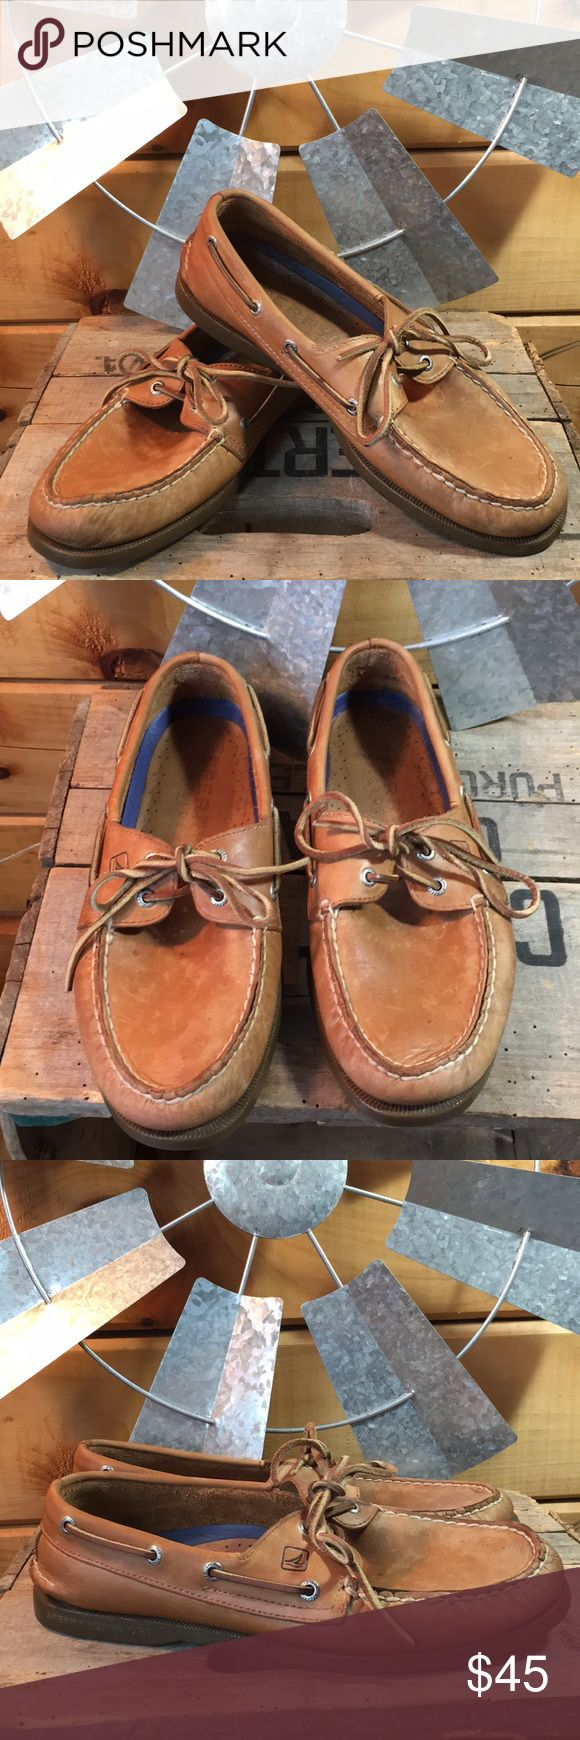 Men's Sperry Top Sider Preloved Sperry boat shoes in very good condition with normal wear. Size 8.5 Sperry Top-Sider Shoes Boat Shoes